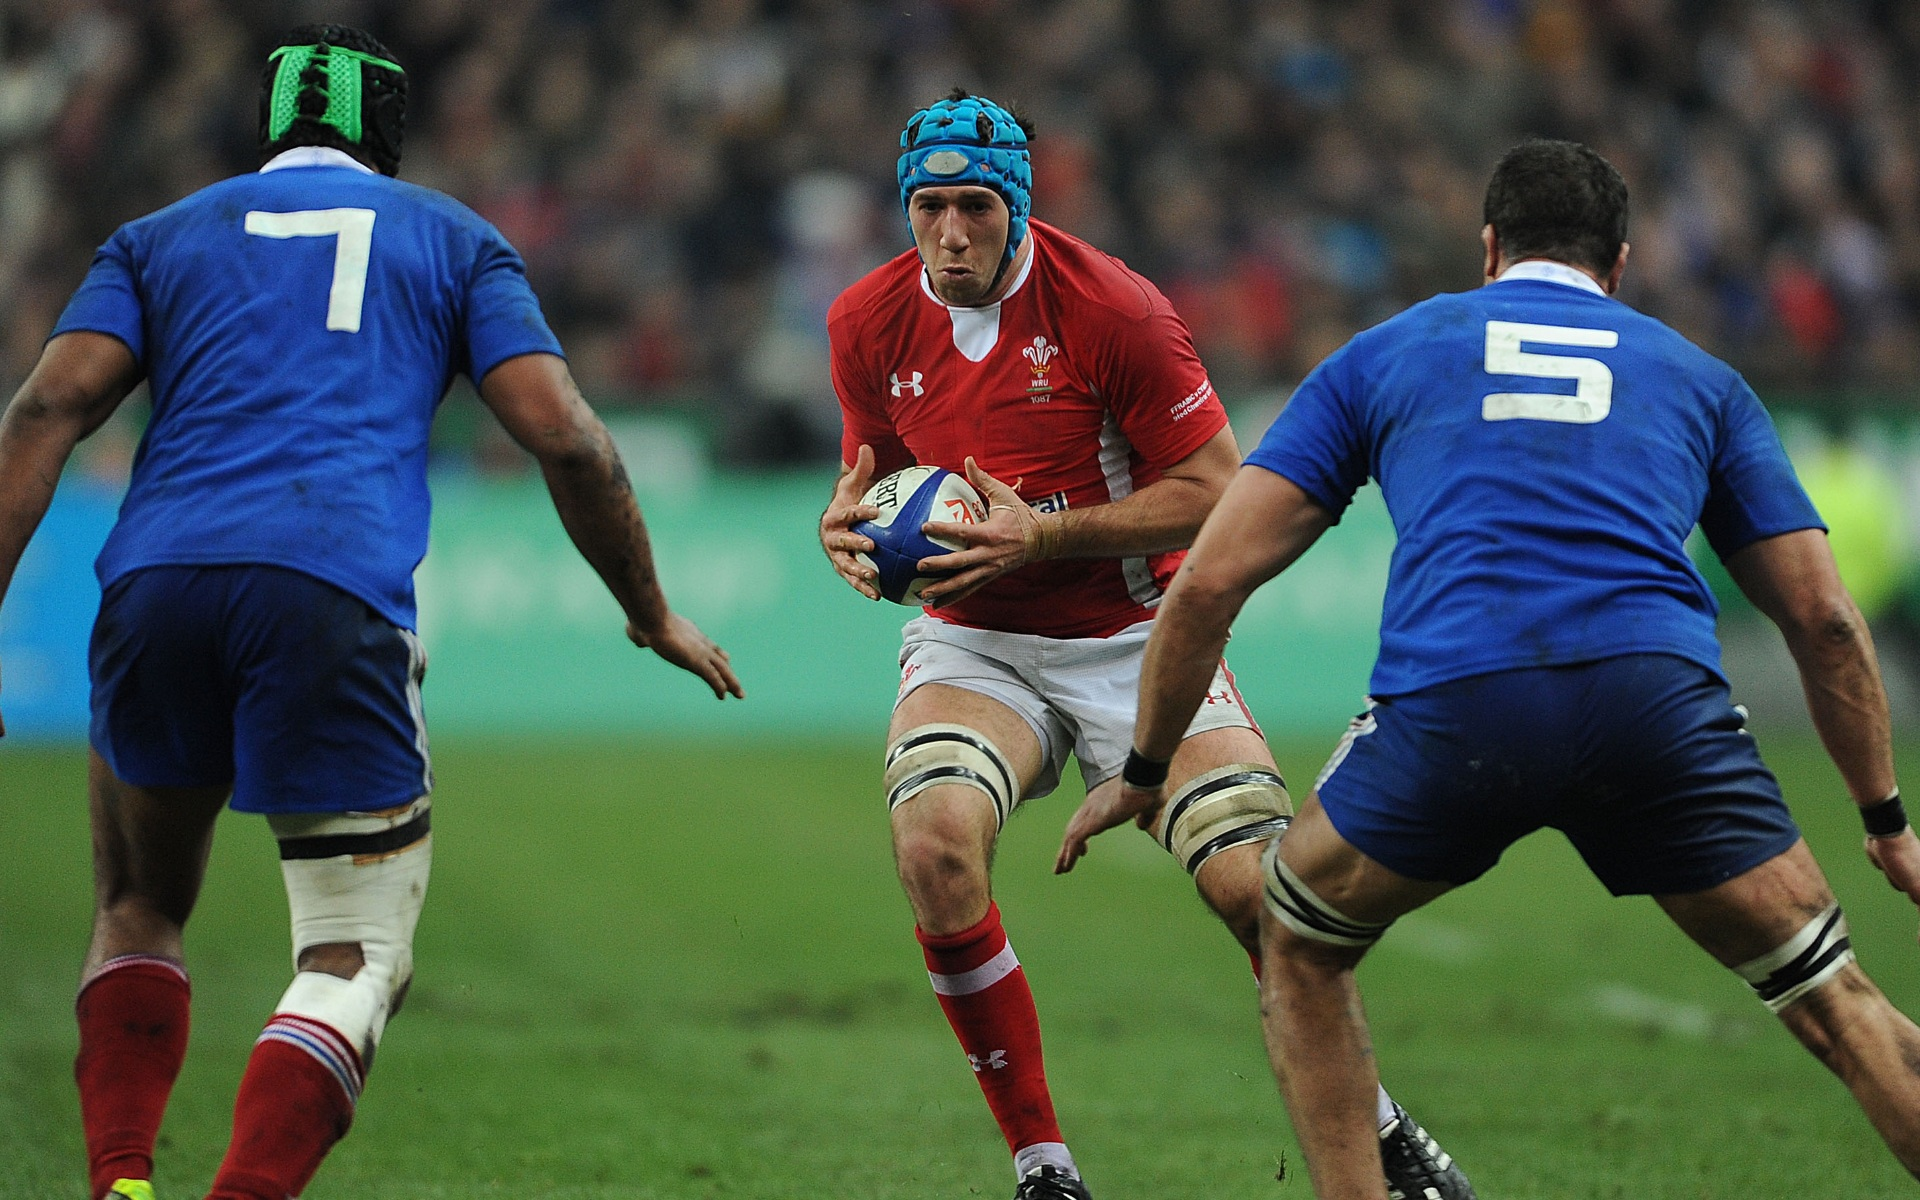 WRU signs two year deal with Admiral